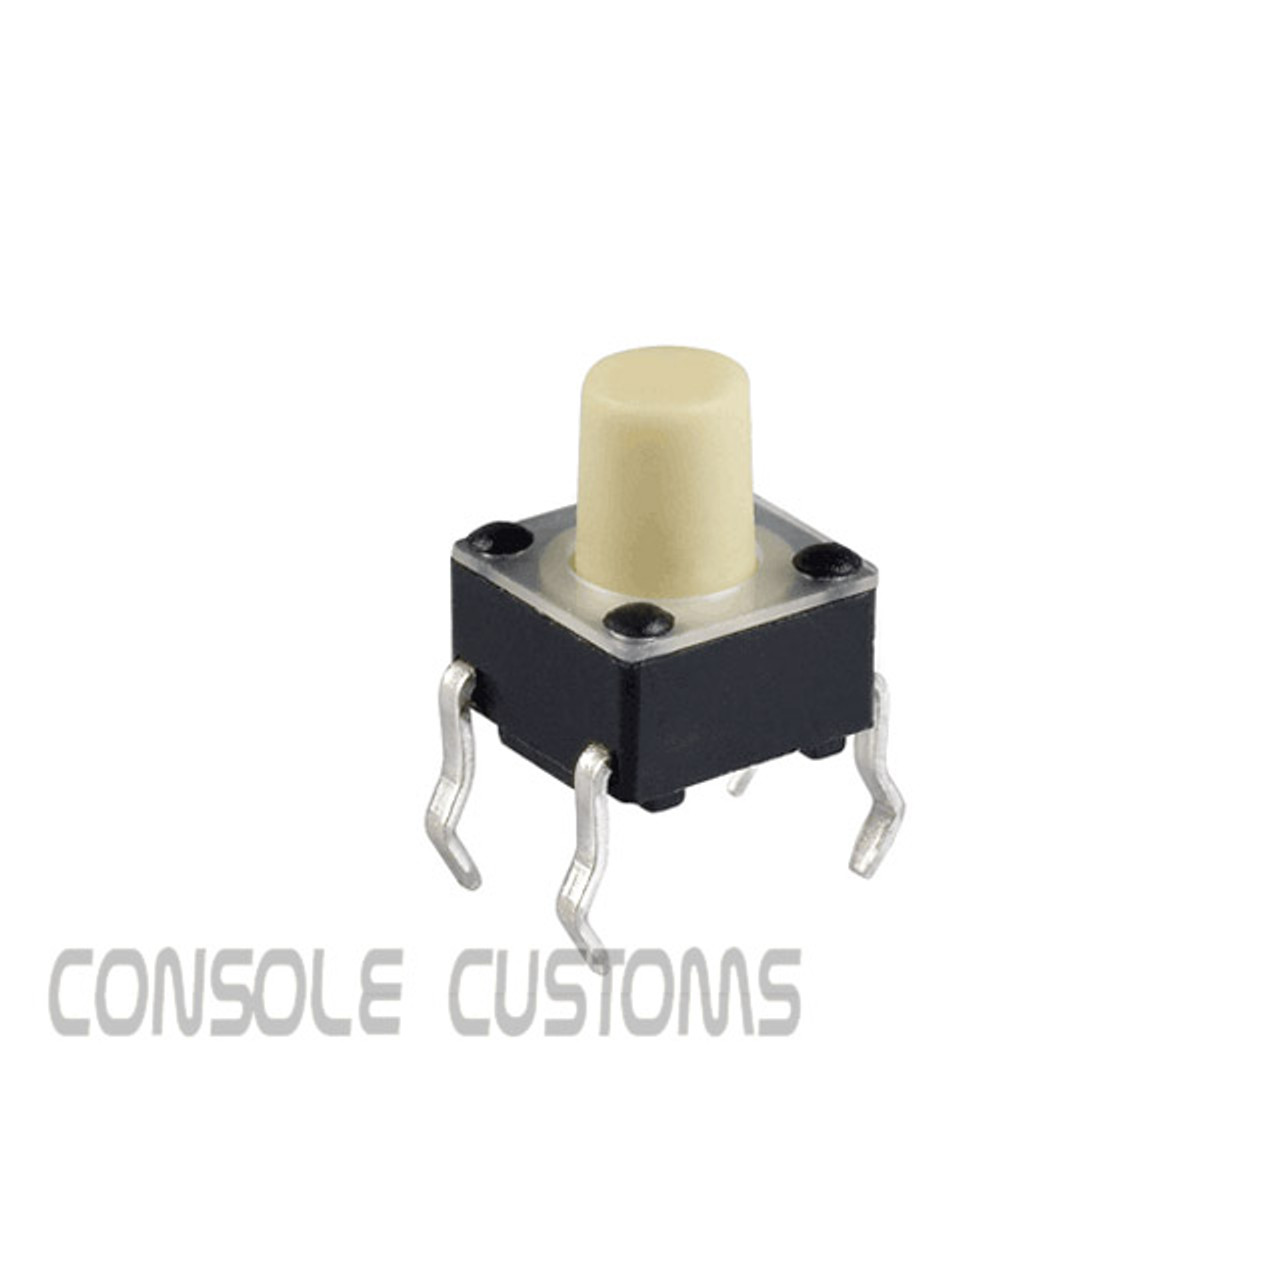 6x6x7mm Tactile switch (White stem)